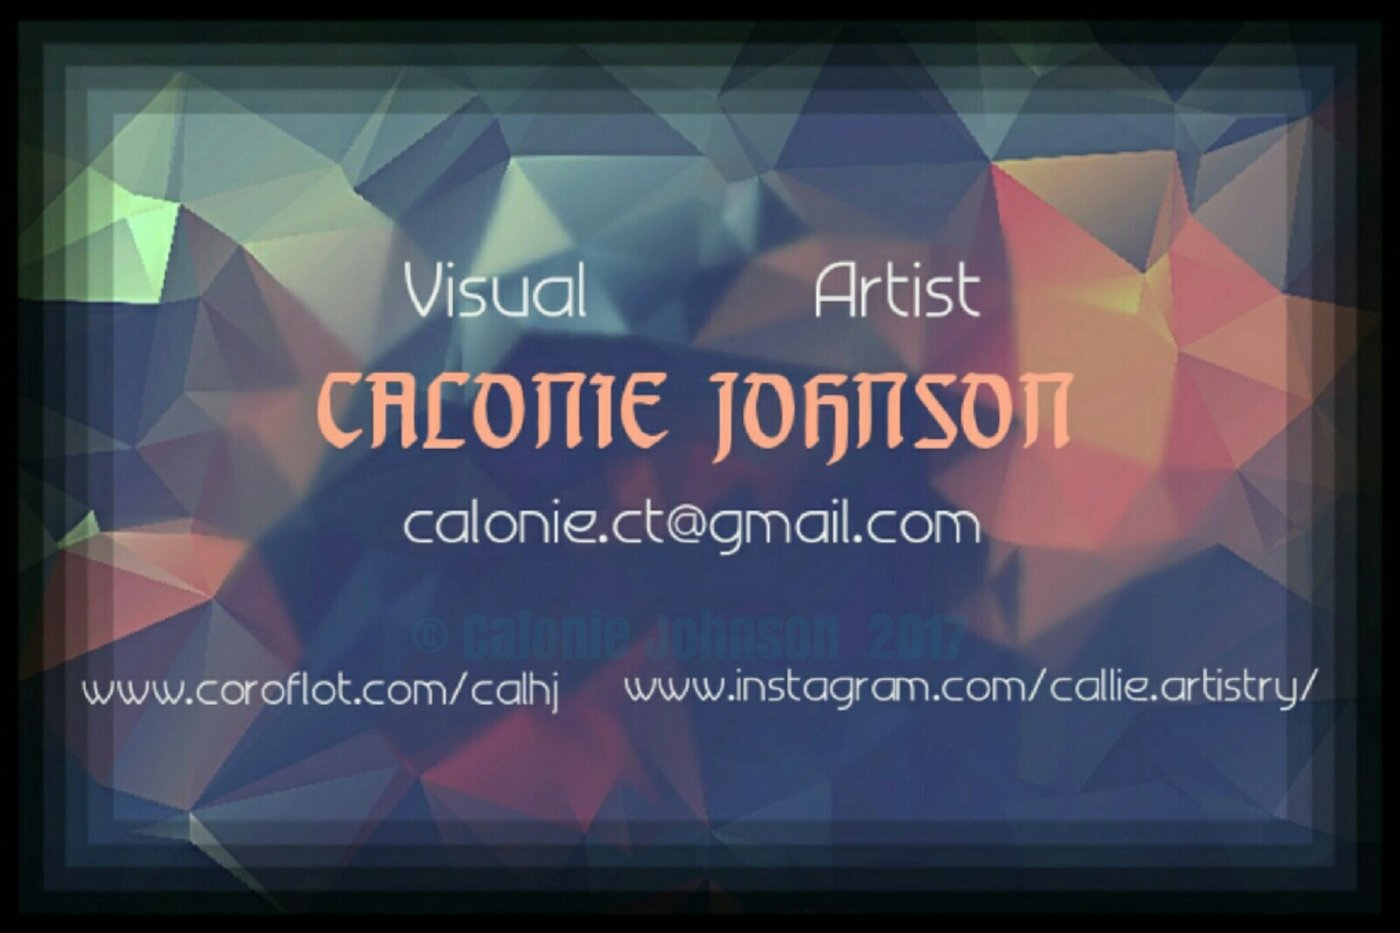 Graphic Design (business cards) by Calonie Johnson at Coroflot.com